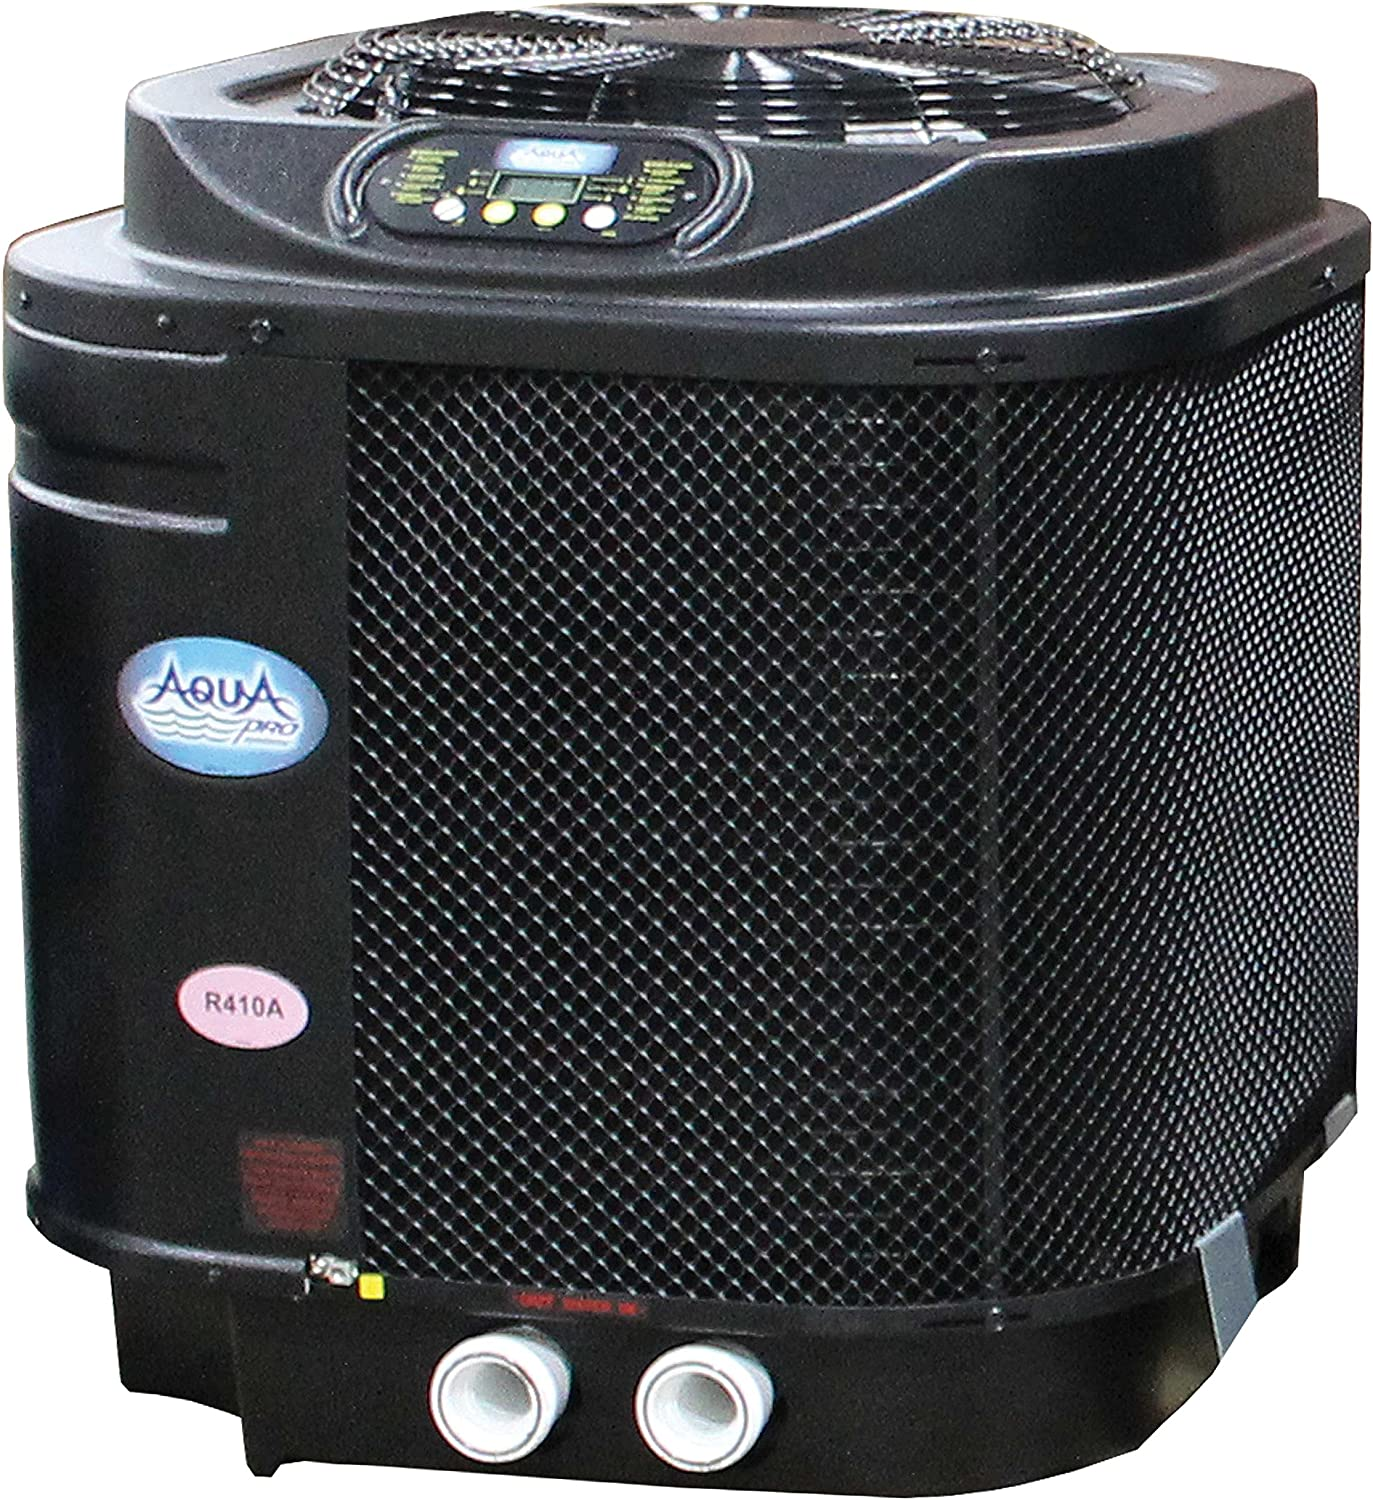 Top 5 Best Swimming Pool Heaters (2020 Reviews & Buying Guide) 4